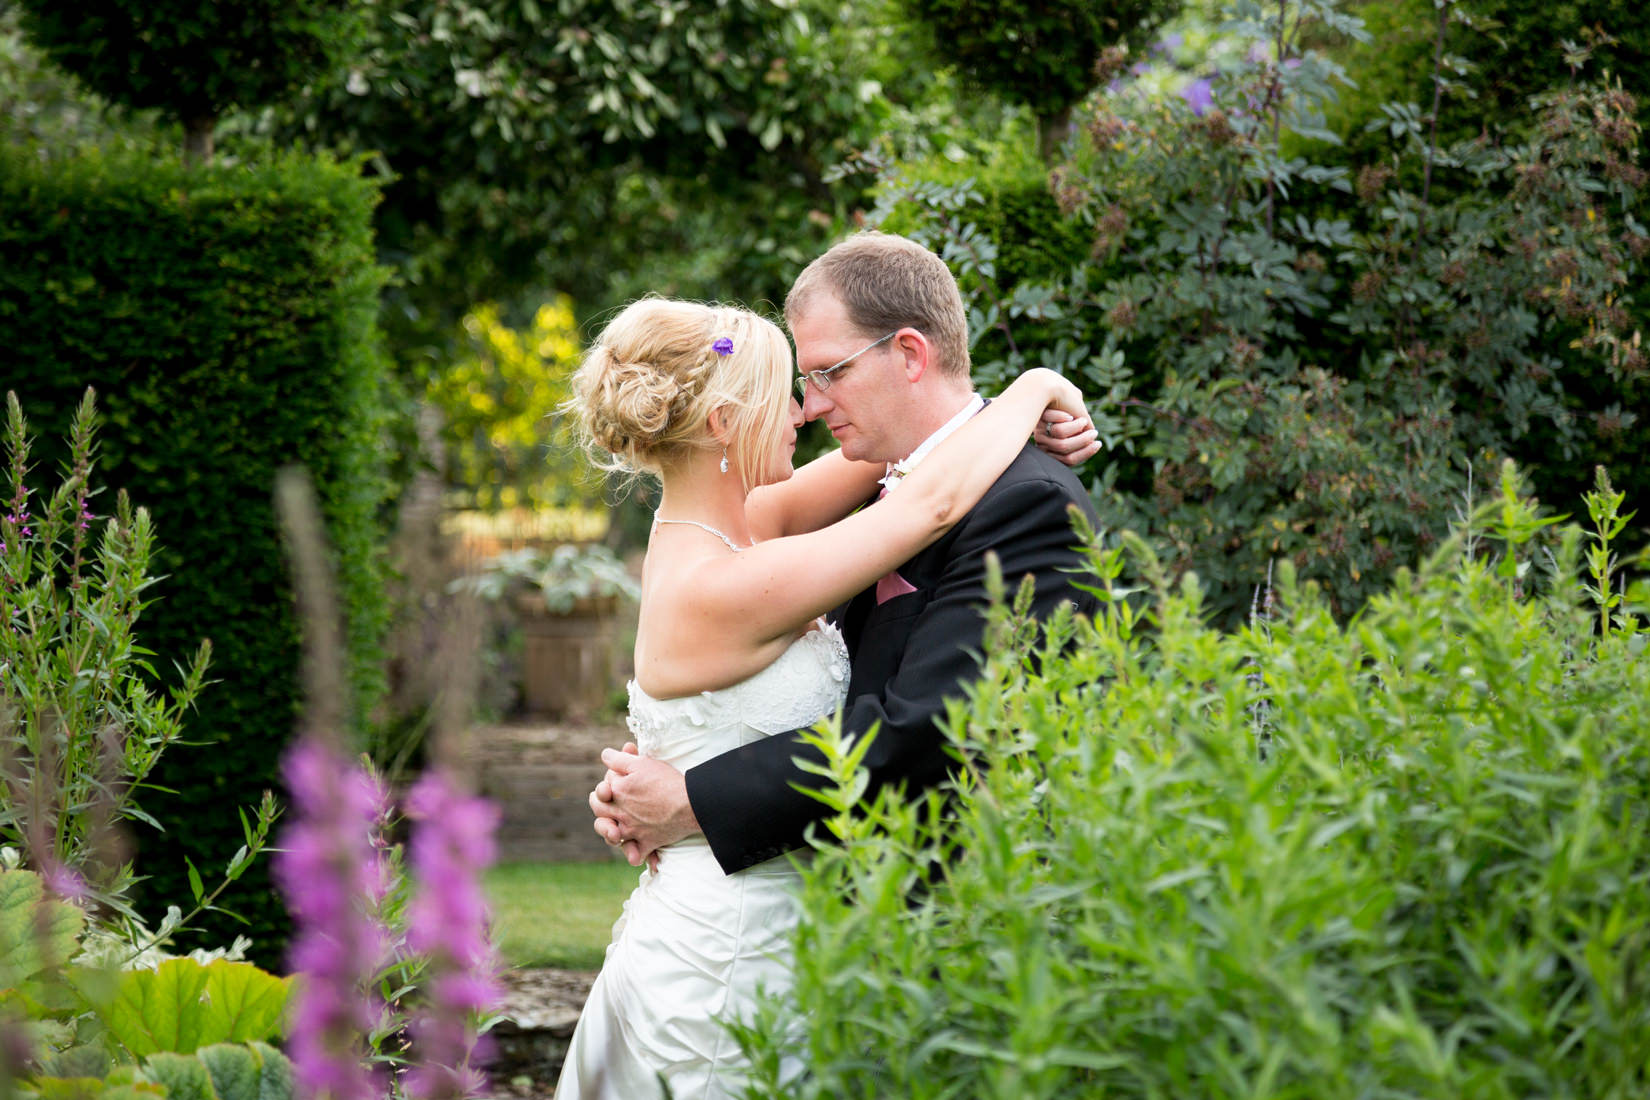 photography from a wedding at oxleaze barn in burford